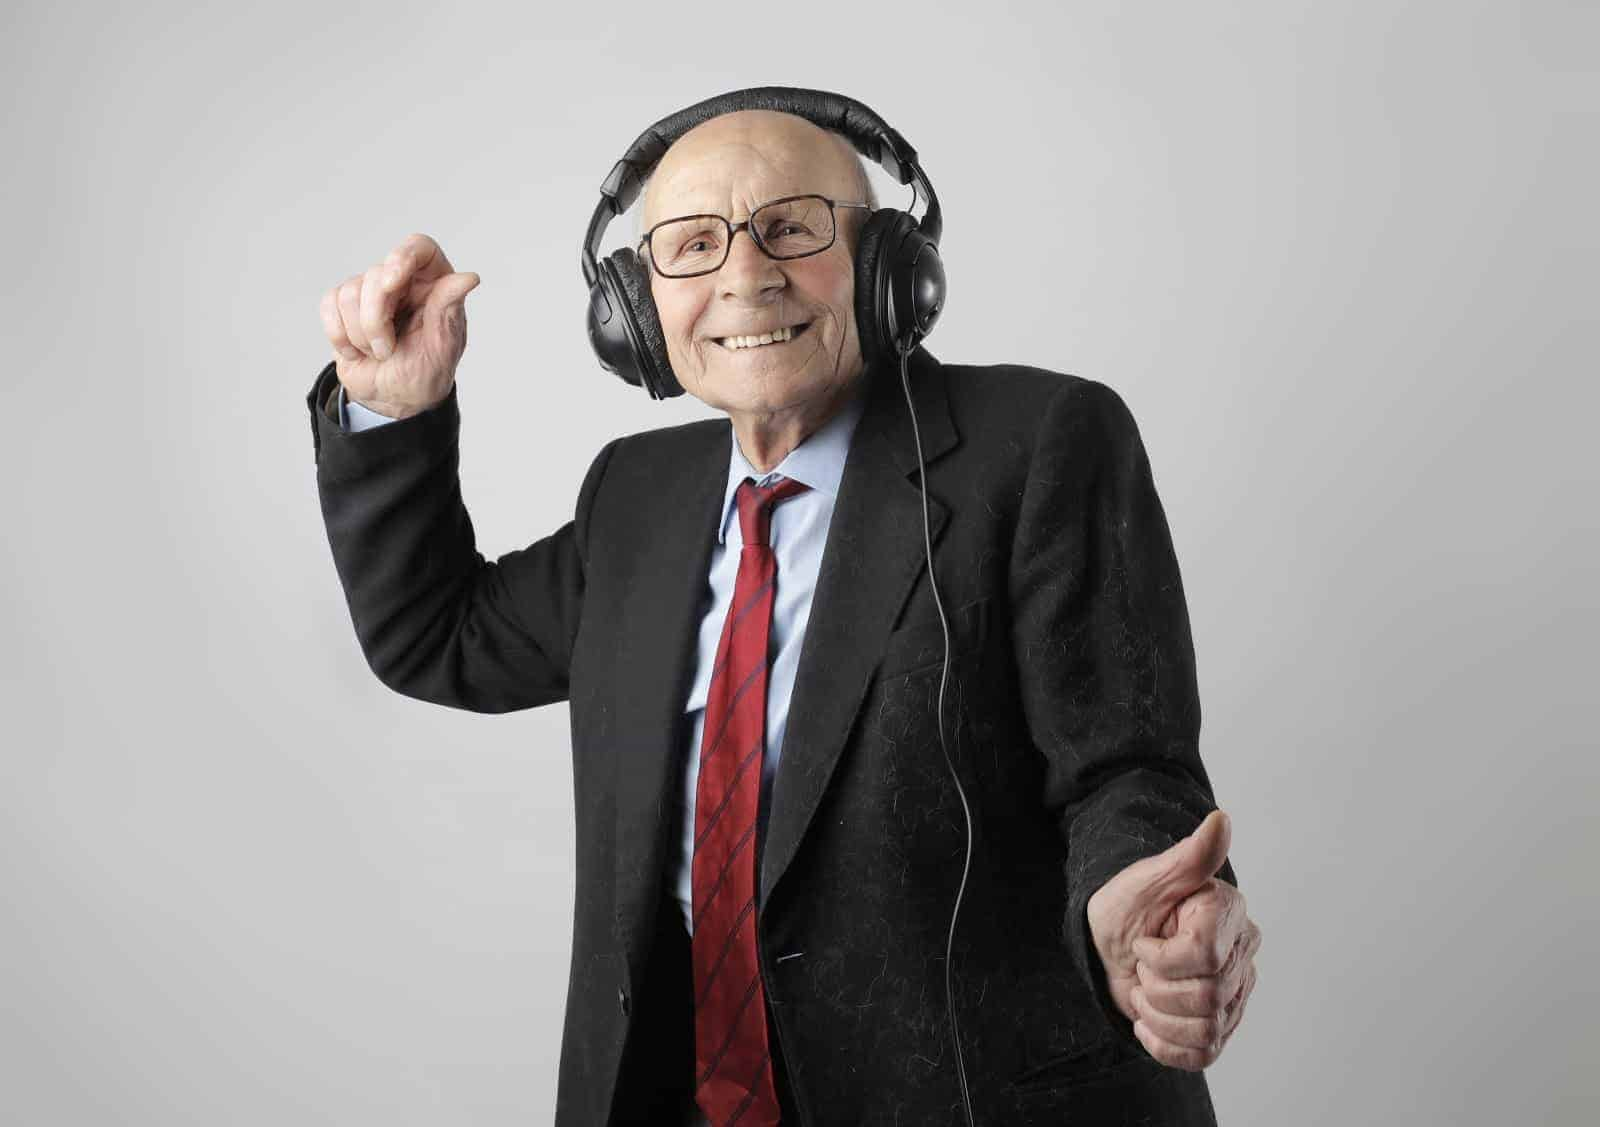 Older guy dancing with headphones on as part of a section on whether intermittent fasting helps with longevity.